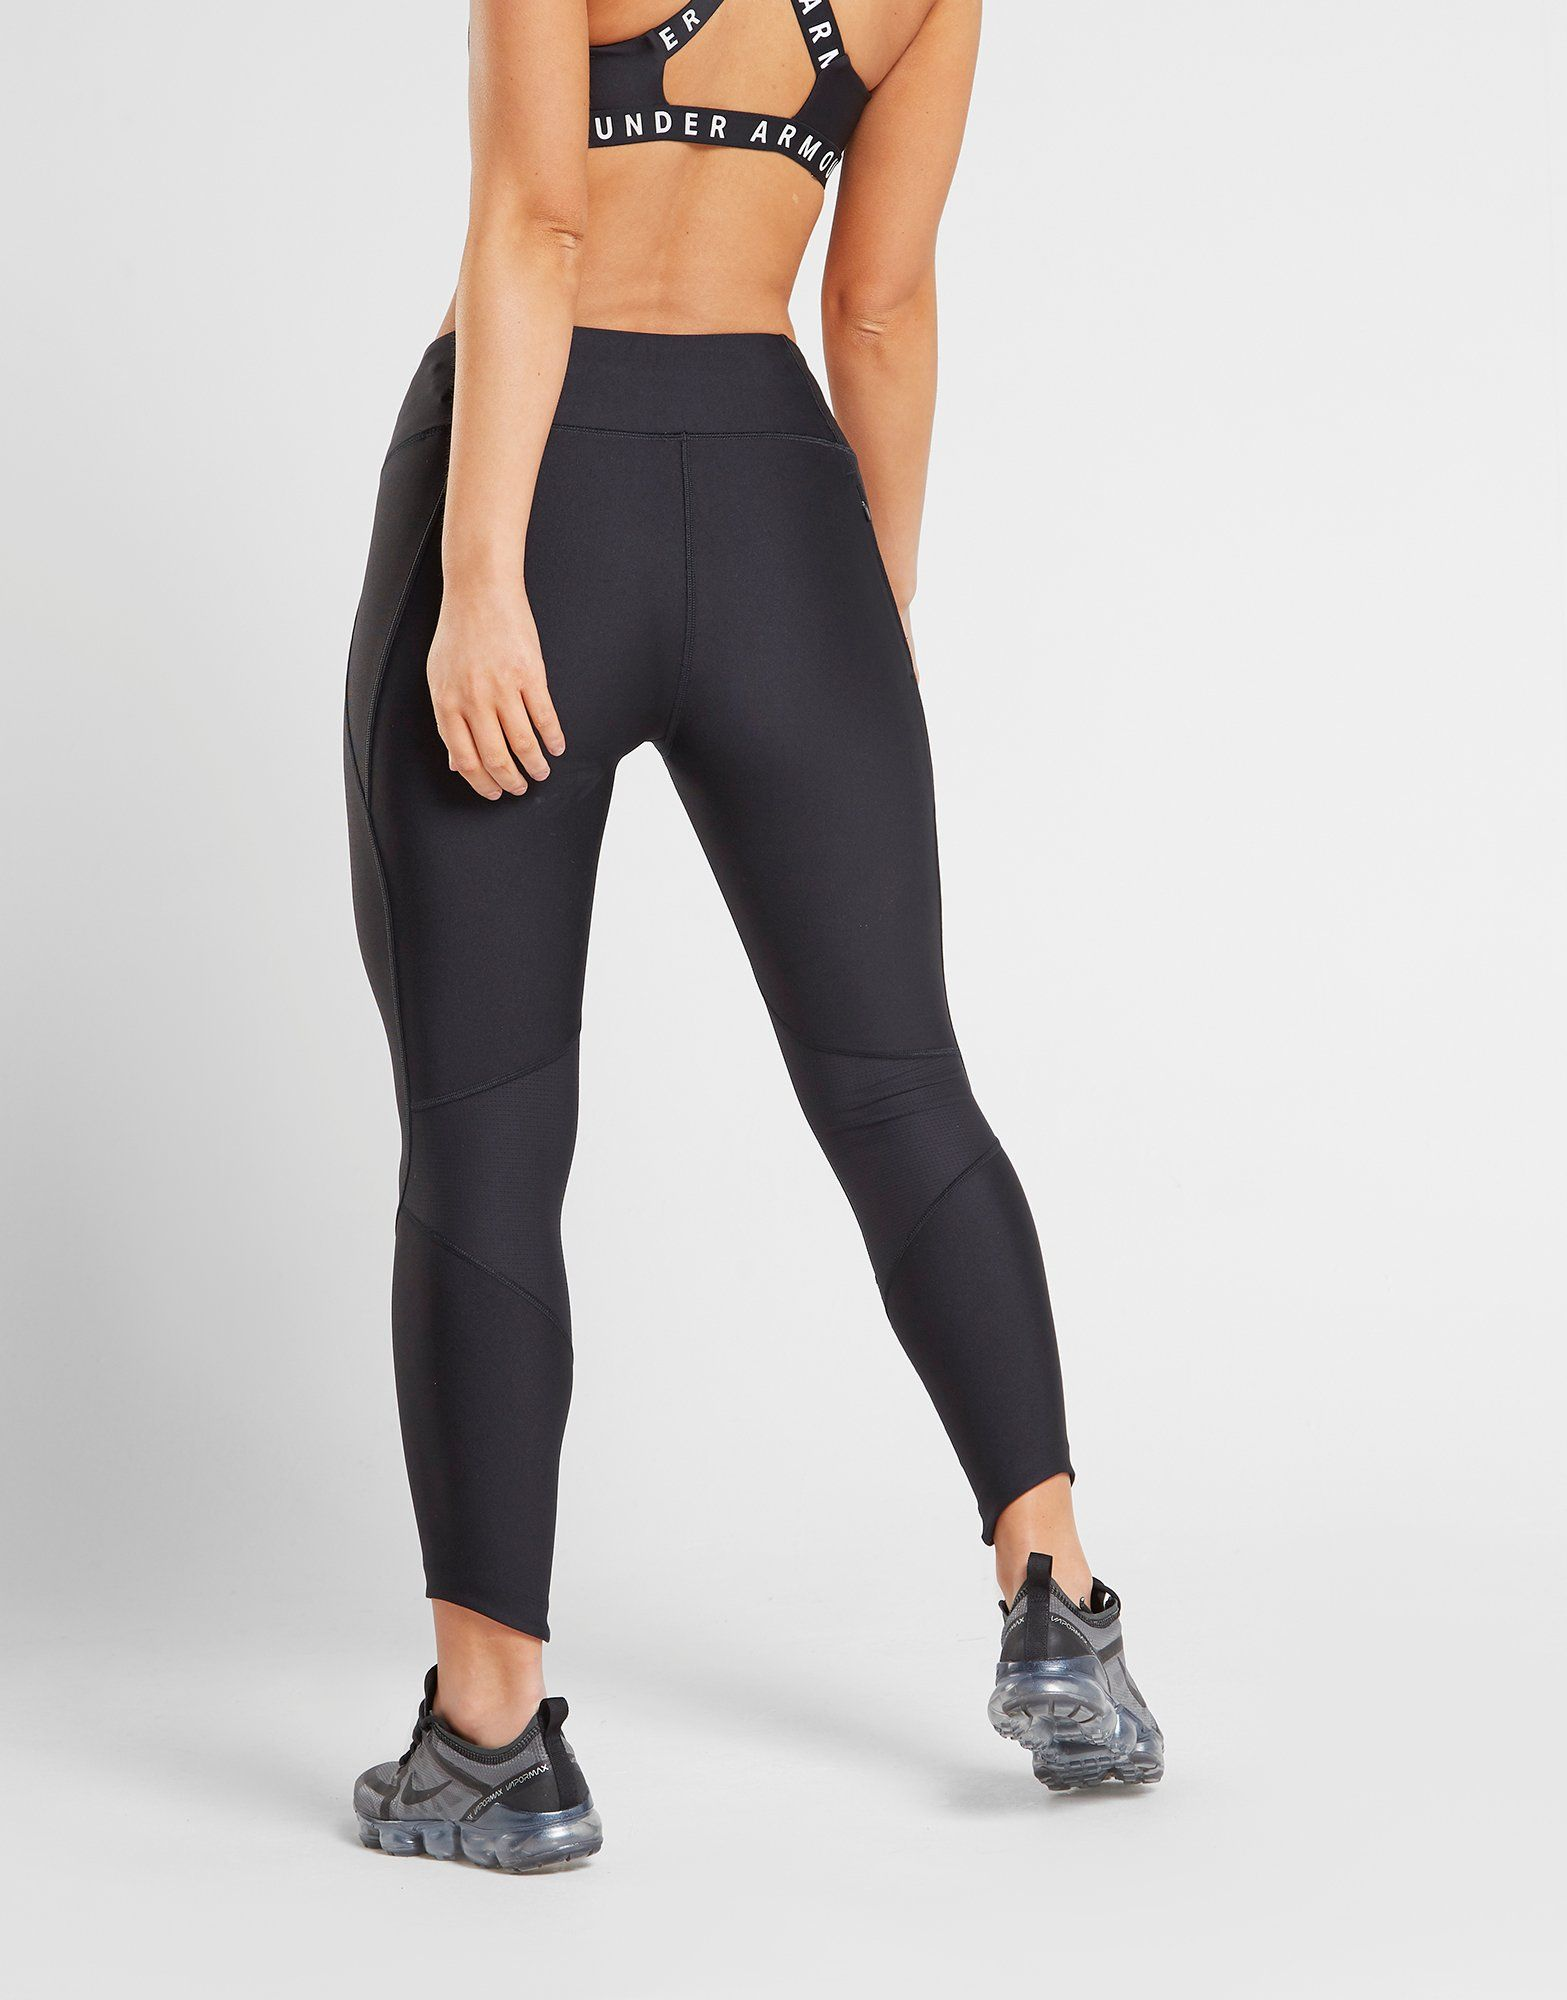 Under Armour Fly Fast Crop Tights